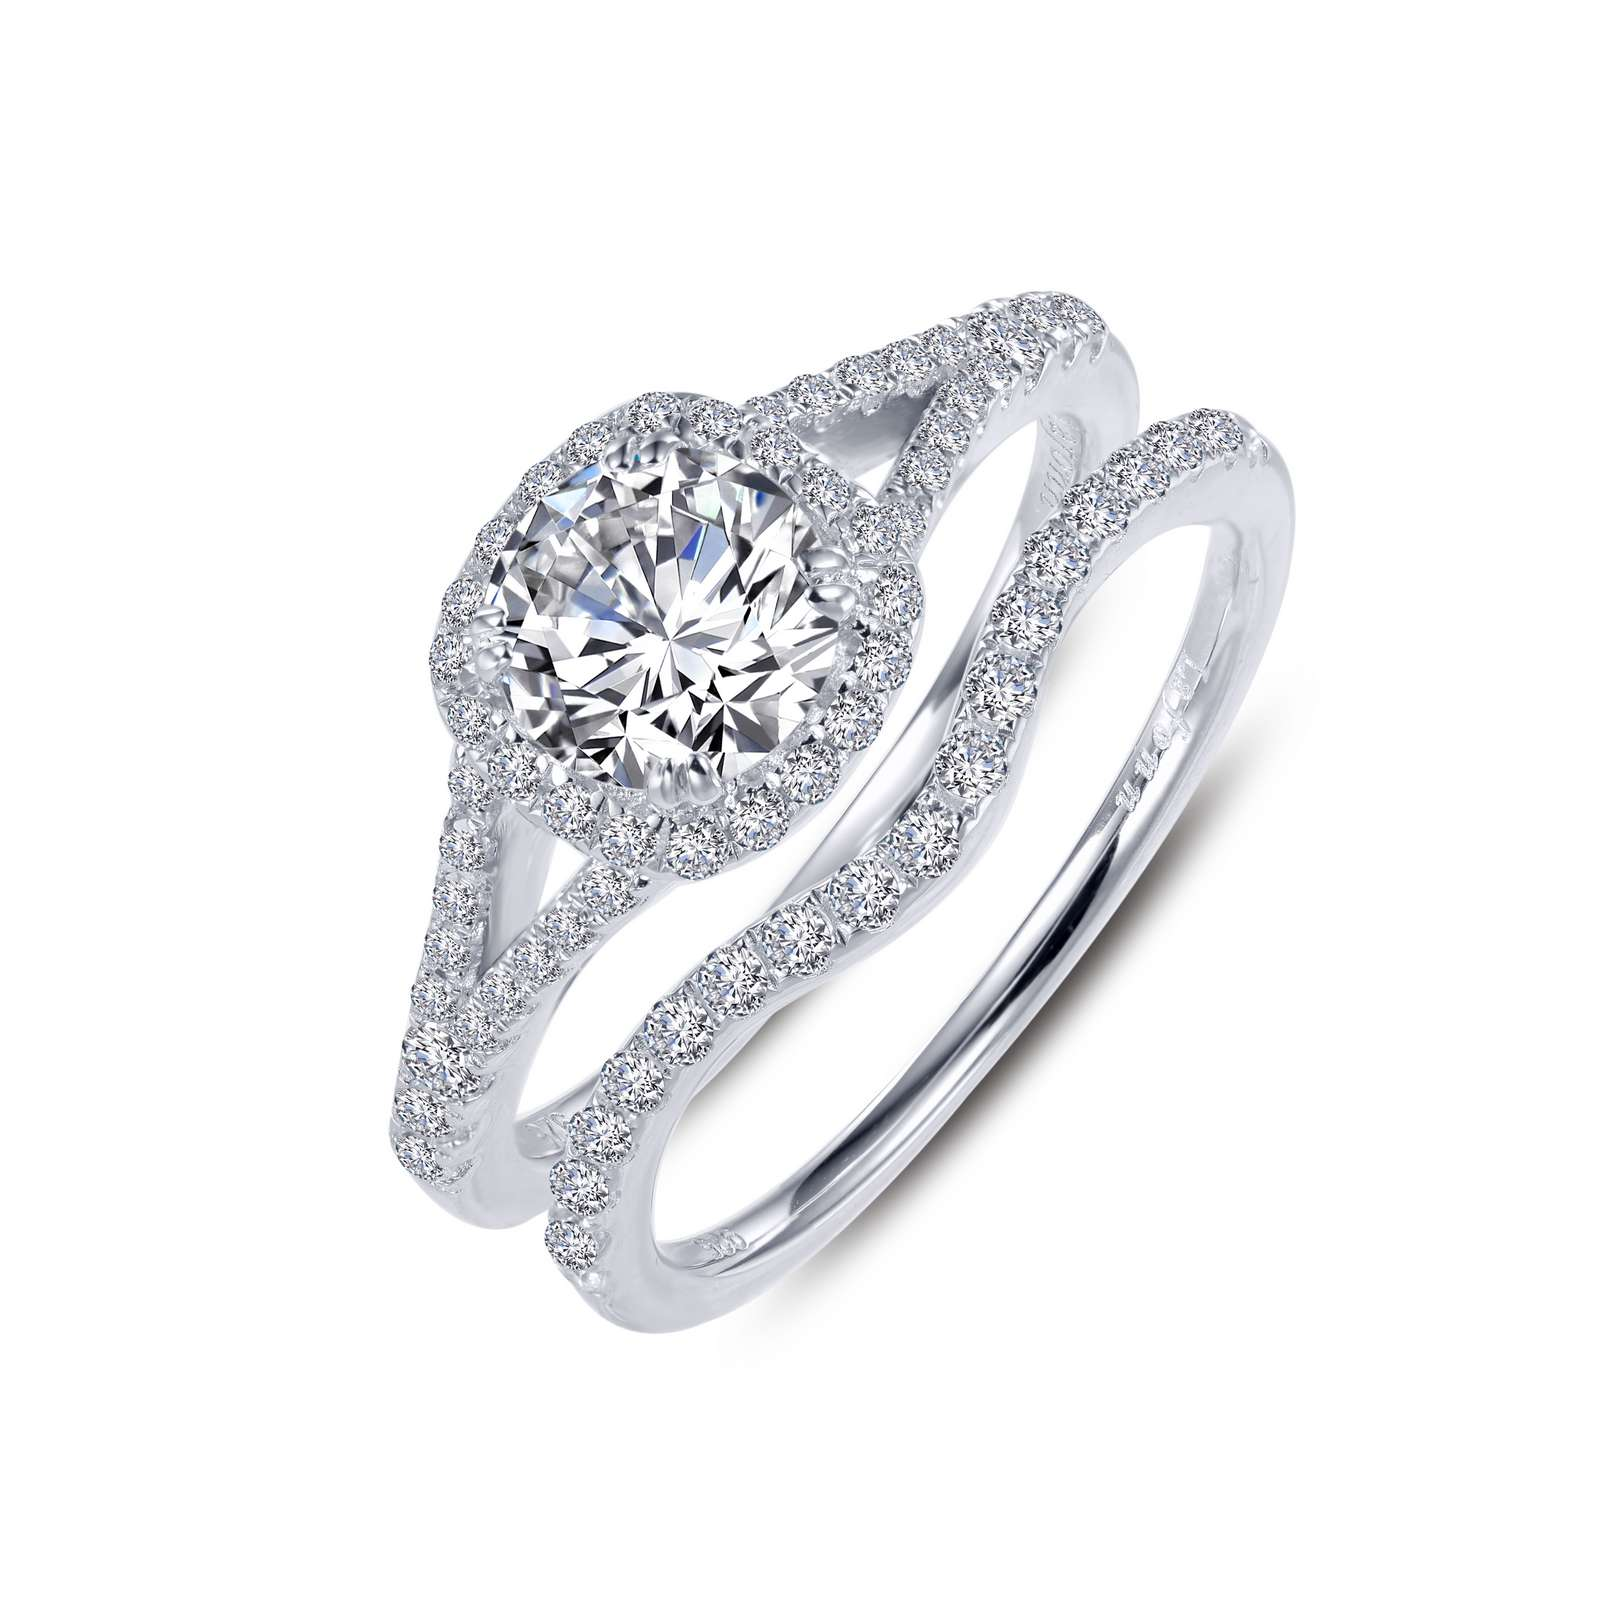 Classic Simulated Diamond Platinum Ring - This classic split shank halo engagement ring showcases a round Lassaire simulated diamond center stone. Additional round Lassaire simulated diamonds line the band and the matching wedding band. This wedding set is set in sterling silver bonded with platinum.